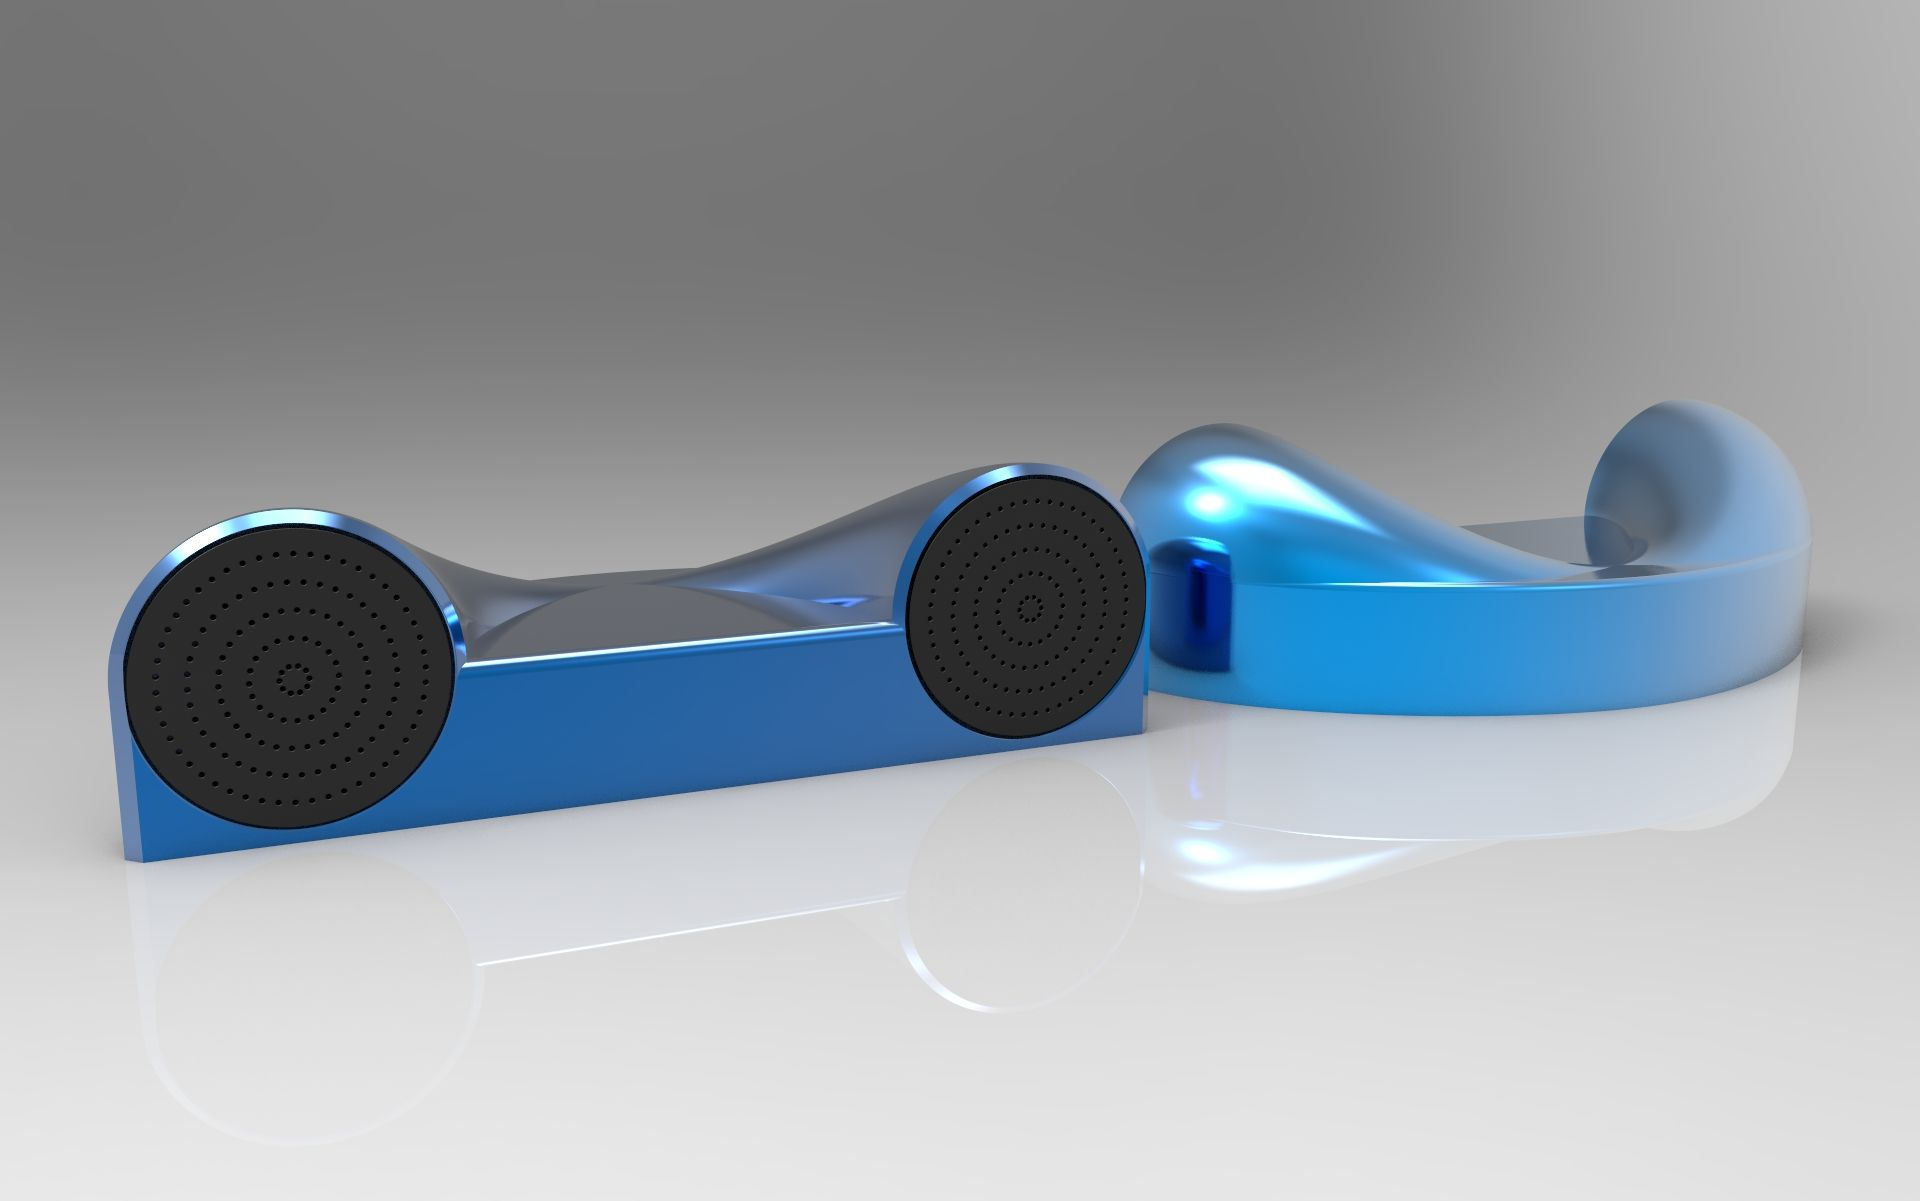 Speaker Concept. Created on Solidworks. Render done on Keyshot.